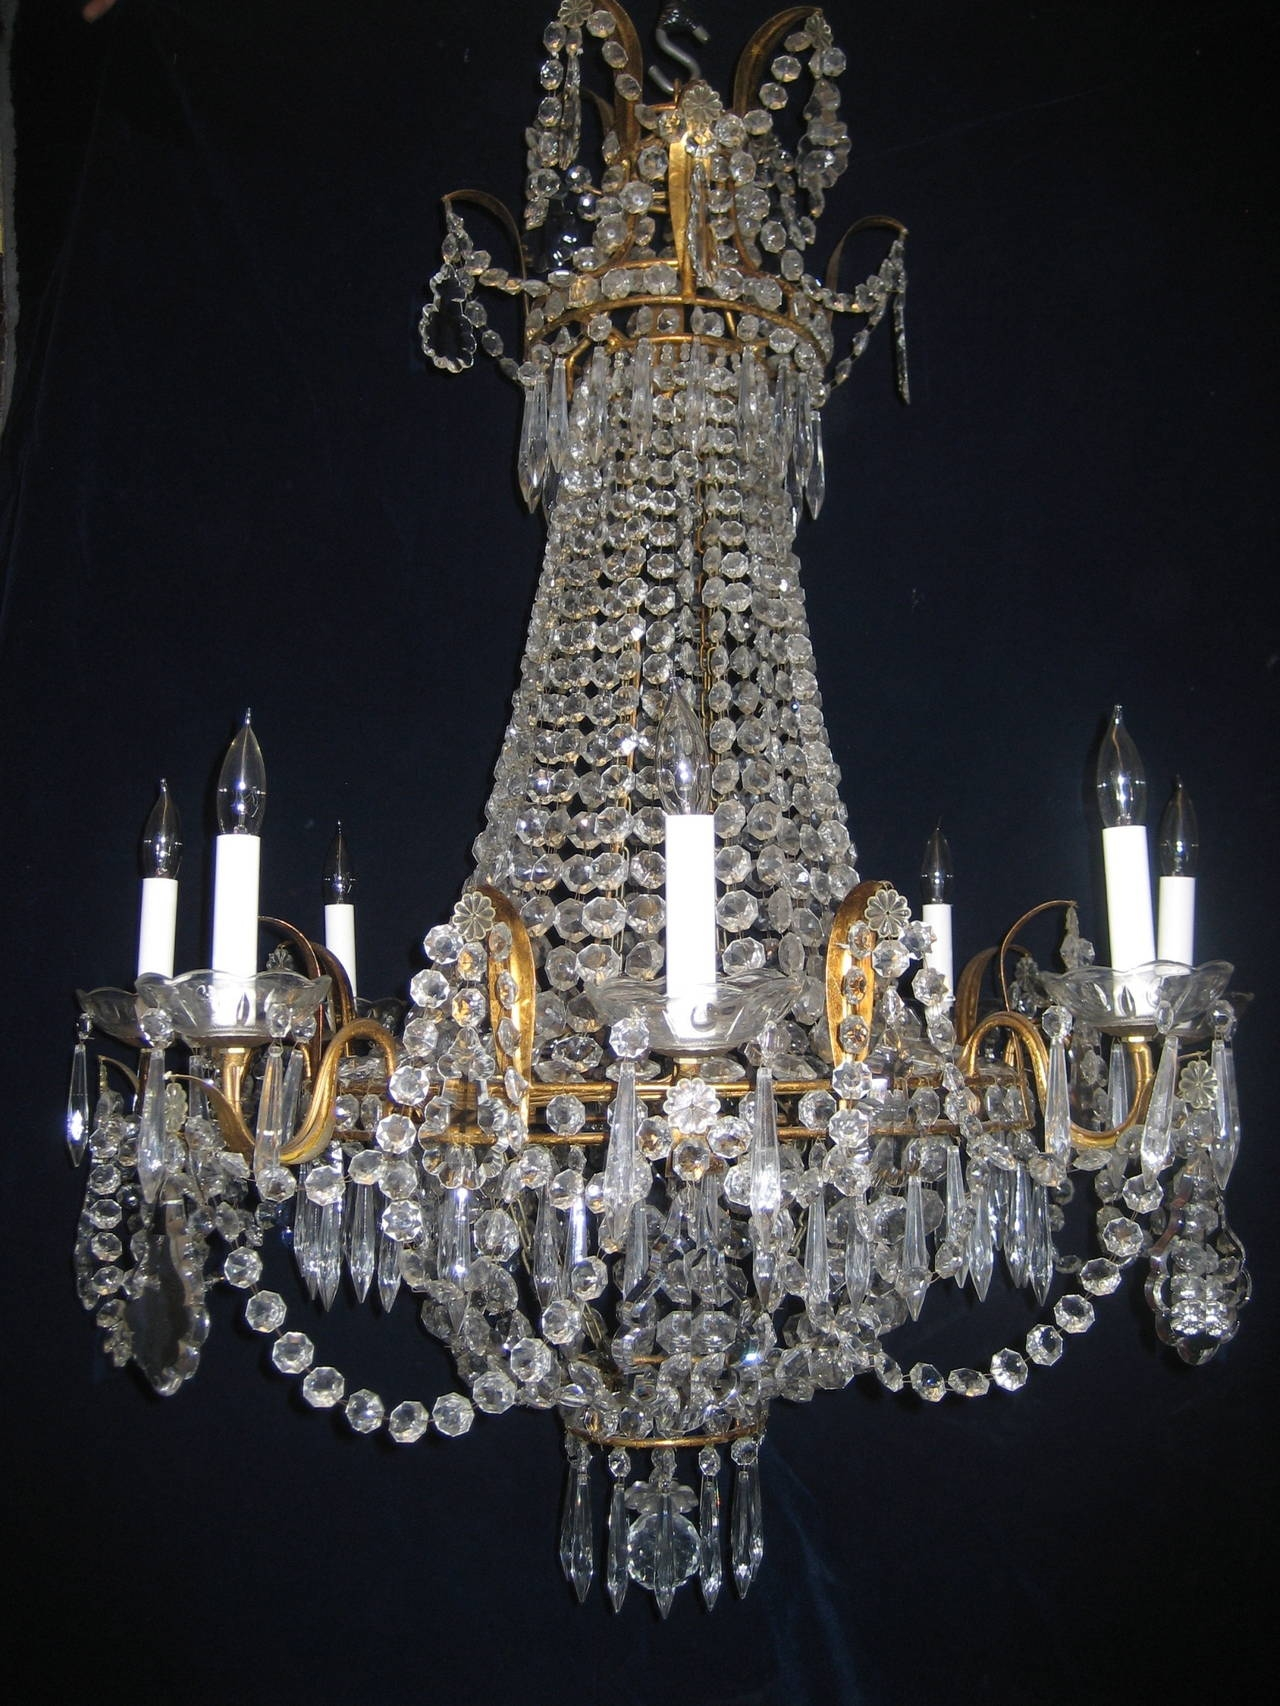 Chandelier Stunning French Crystal Chandelier Empire Chandeliers With Regard To French Crystal Chandeliers (#5 of 12)